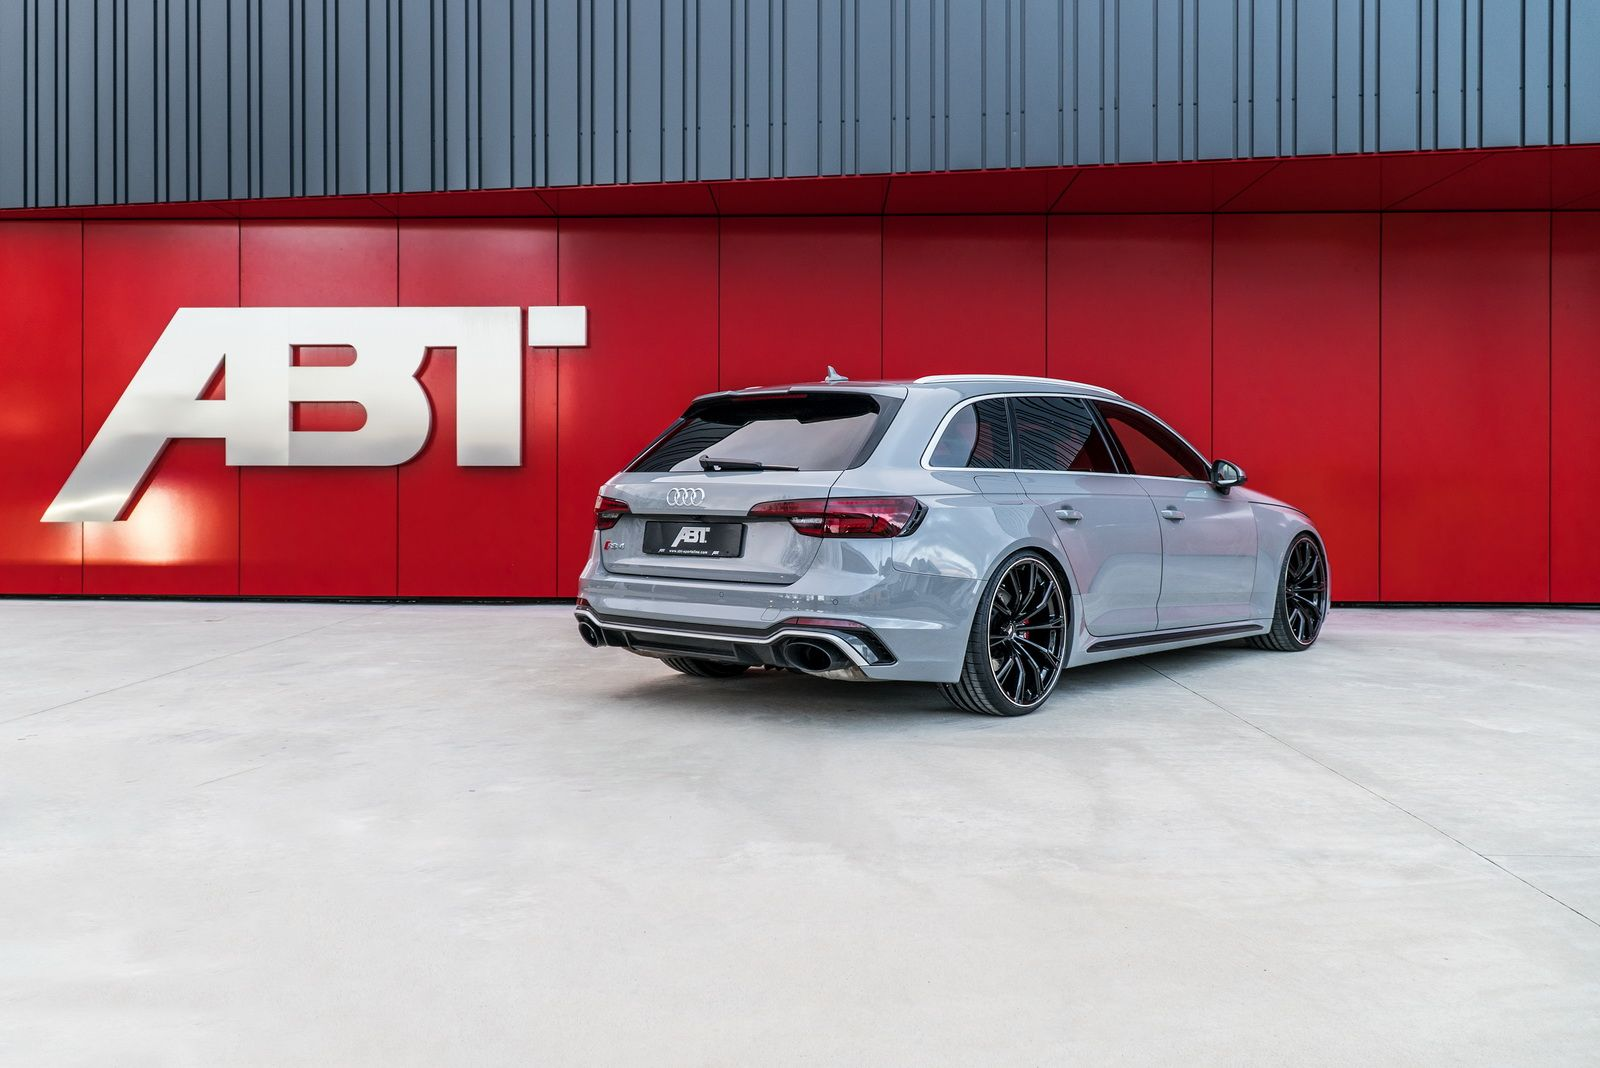 Abt Gives Us 60 More Reasons To Like The Audi Rs4 Avant Carscoops Audi Rs4 Avant Rs4 Avant Audi Rs4